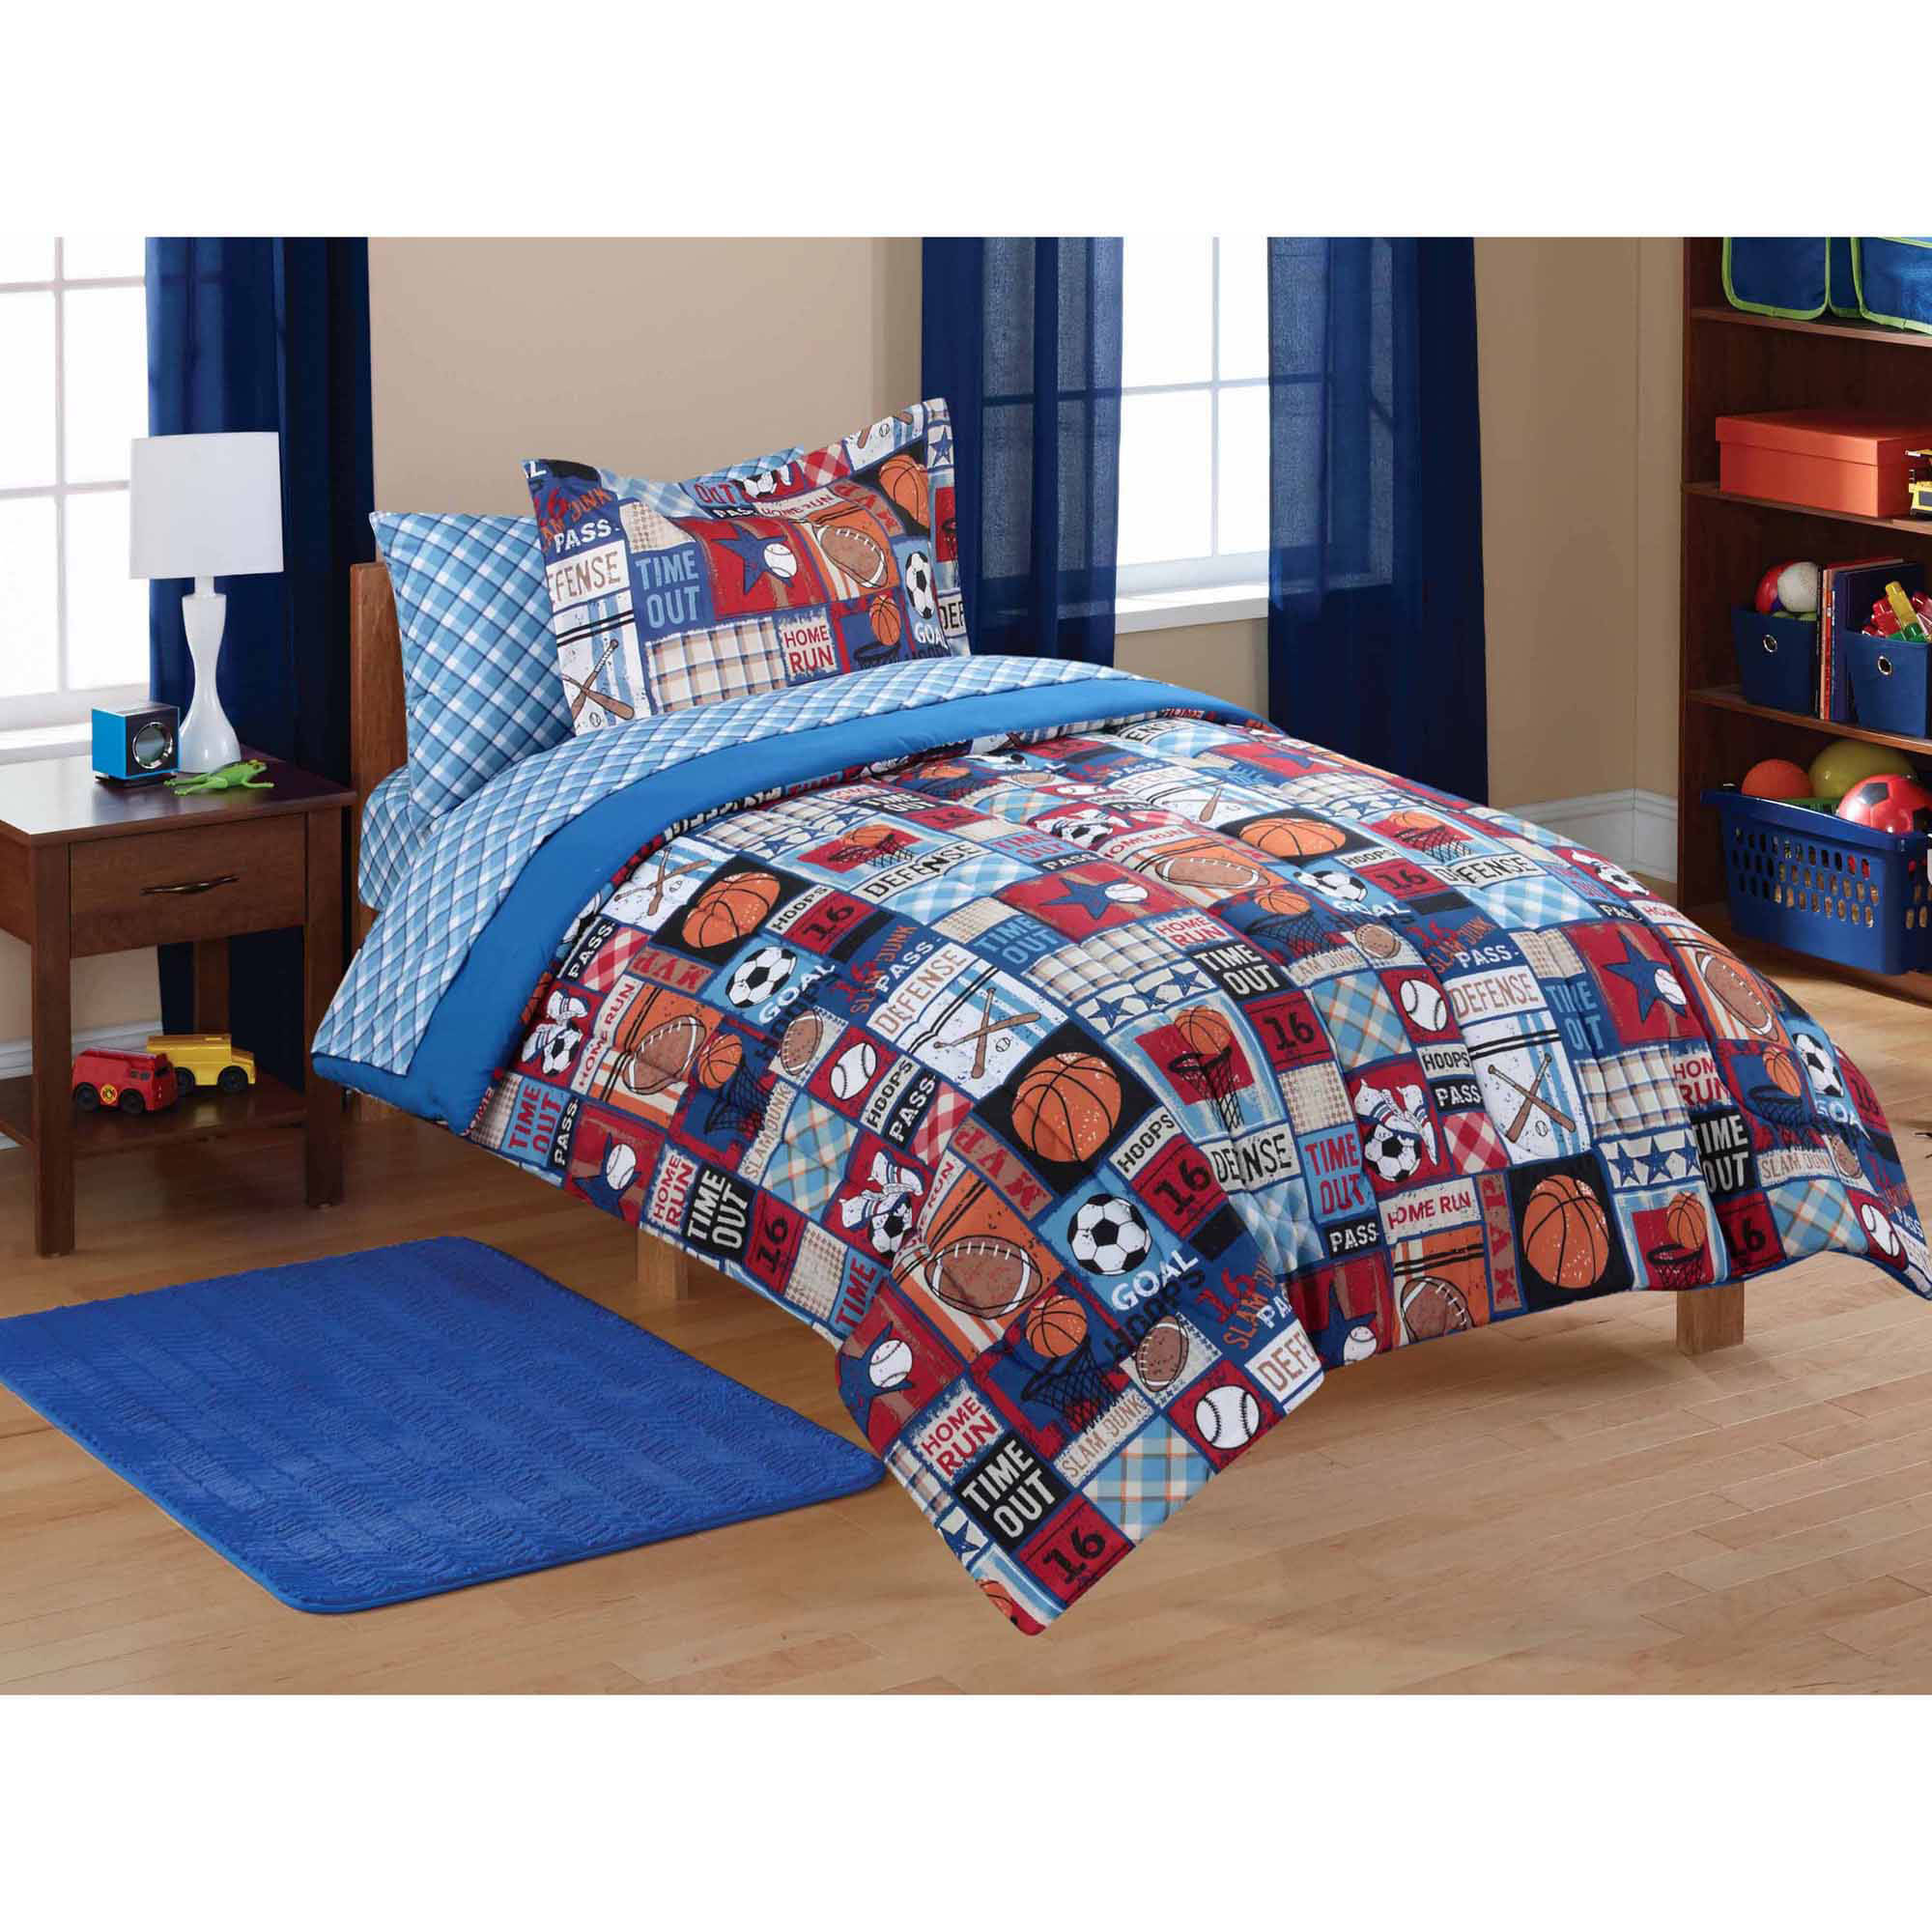 of quilt kids set children covers duvet childrens s beds boy double bedding bed bedspreads for cotton full boys sets size big sports